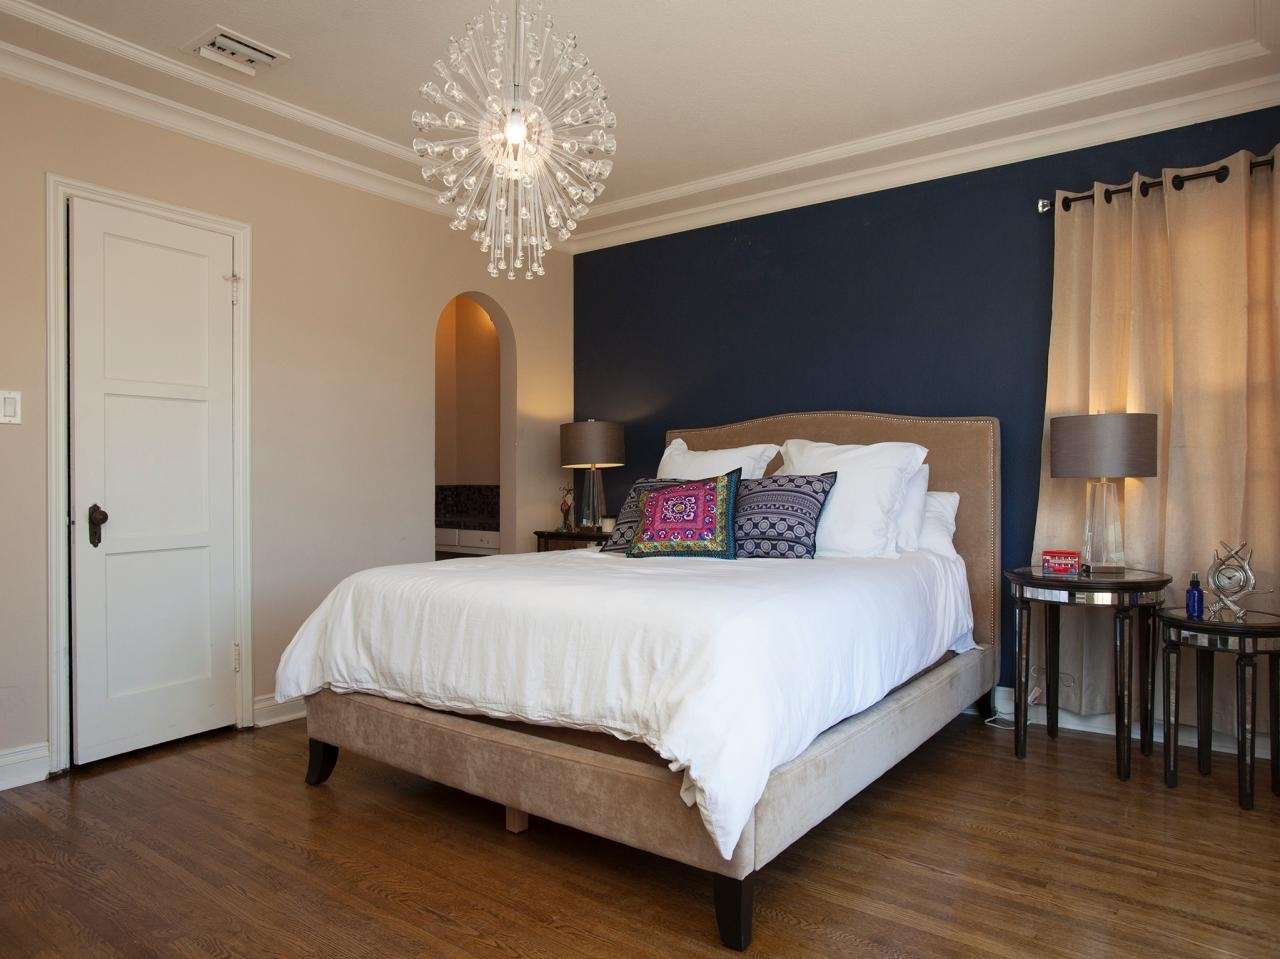 Dark Blue Wall Accent With Burlywood Color Base Pertaining To Light Blue Wall Accents (View 6 of 15)